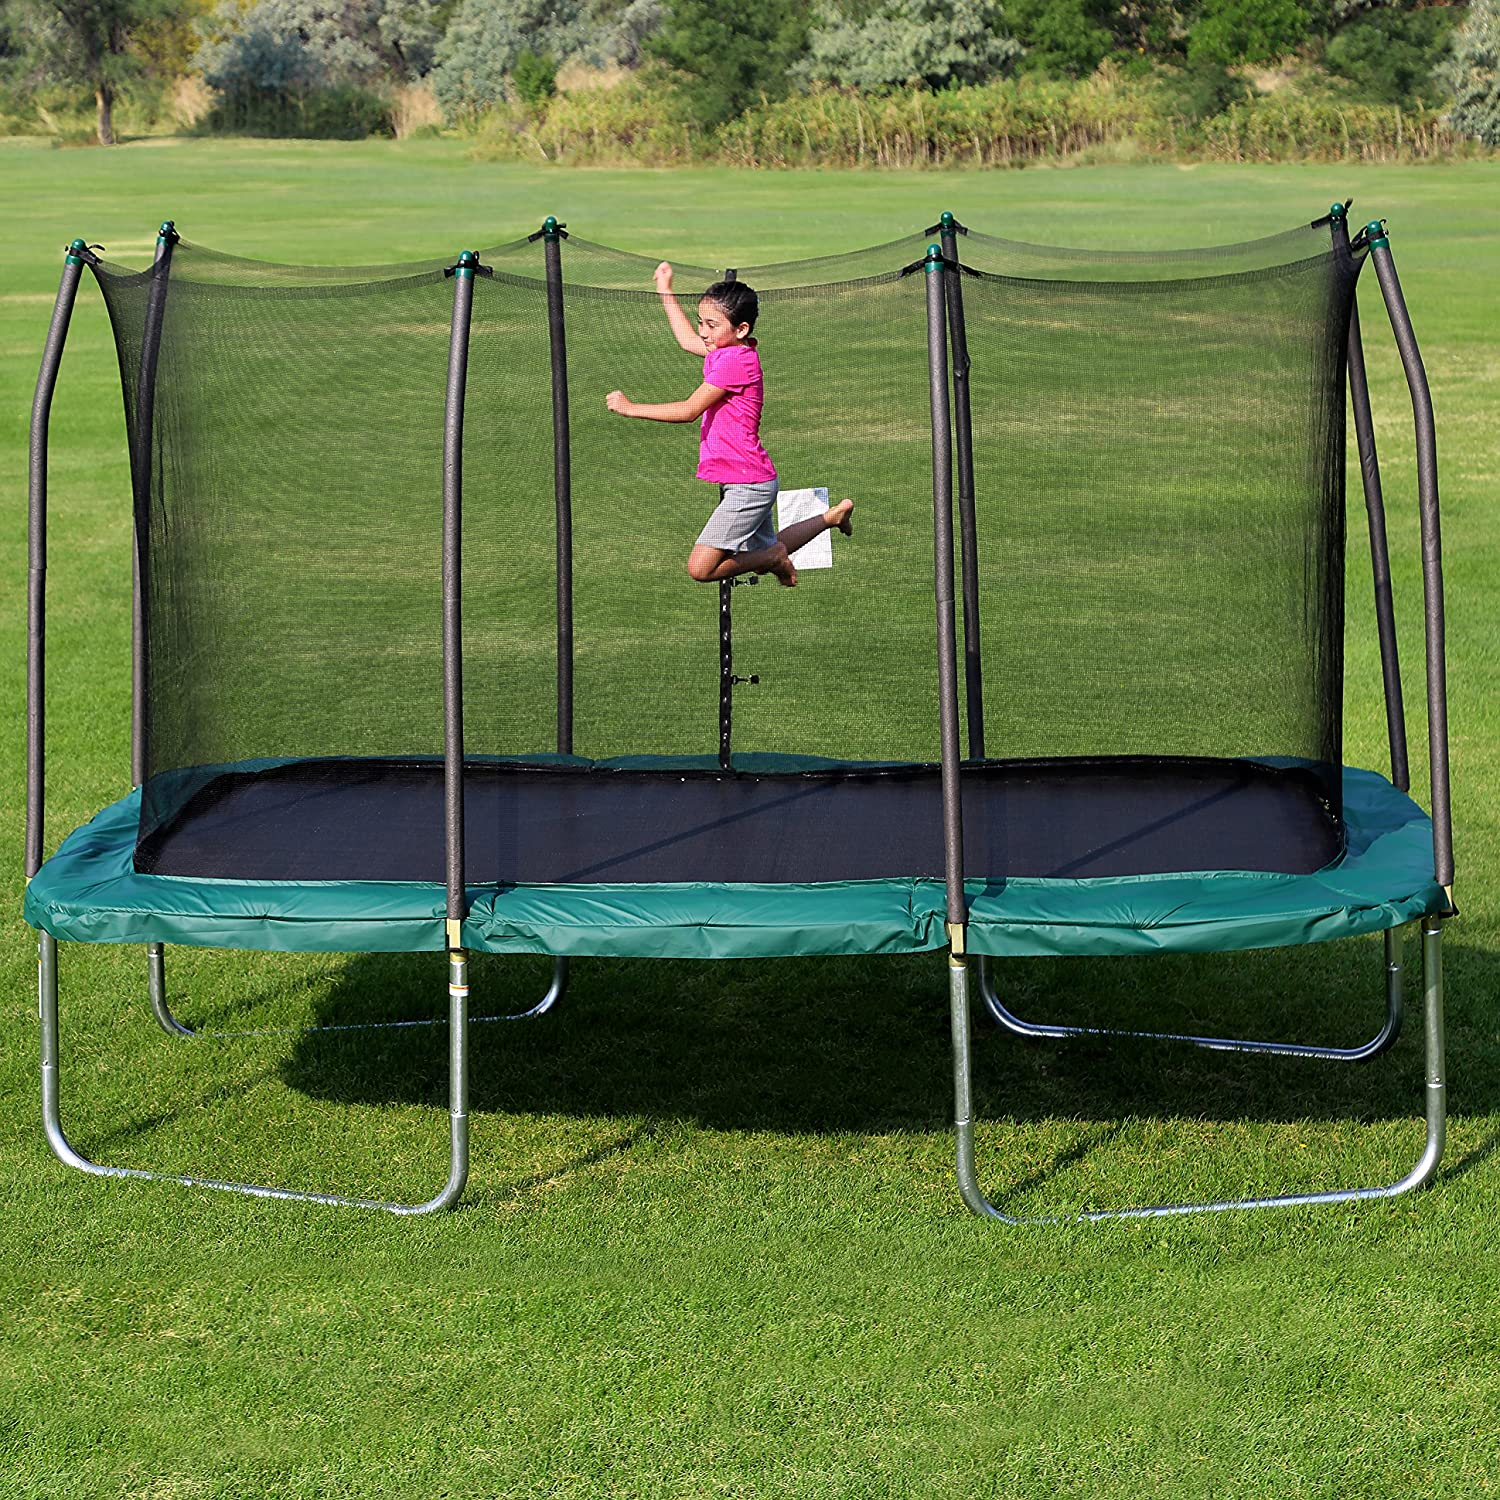 Skywalker 15ft Gymnastics Trampoline Black Friday Deals